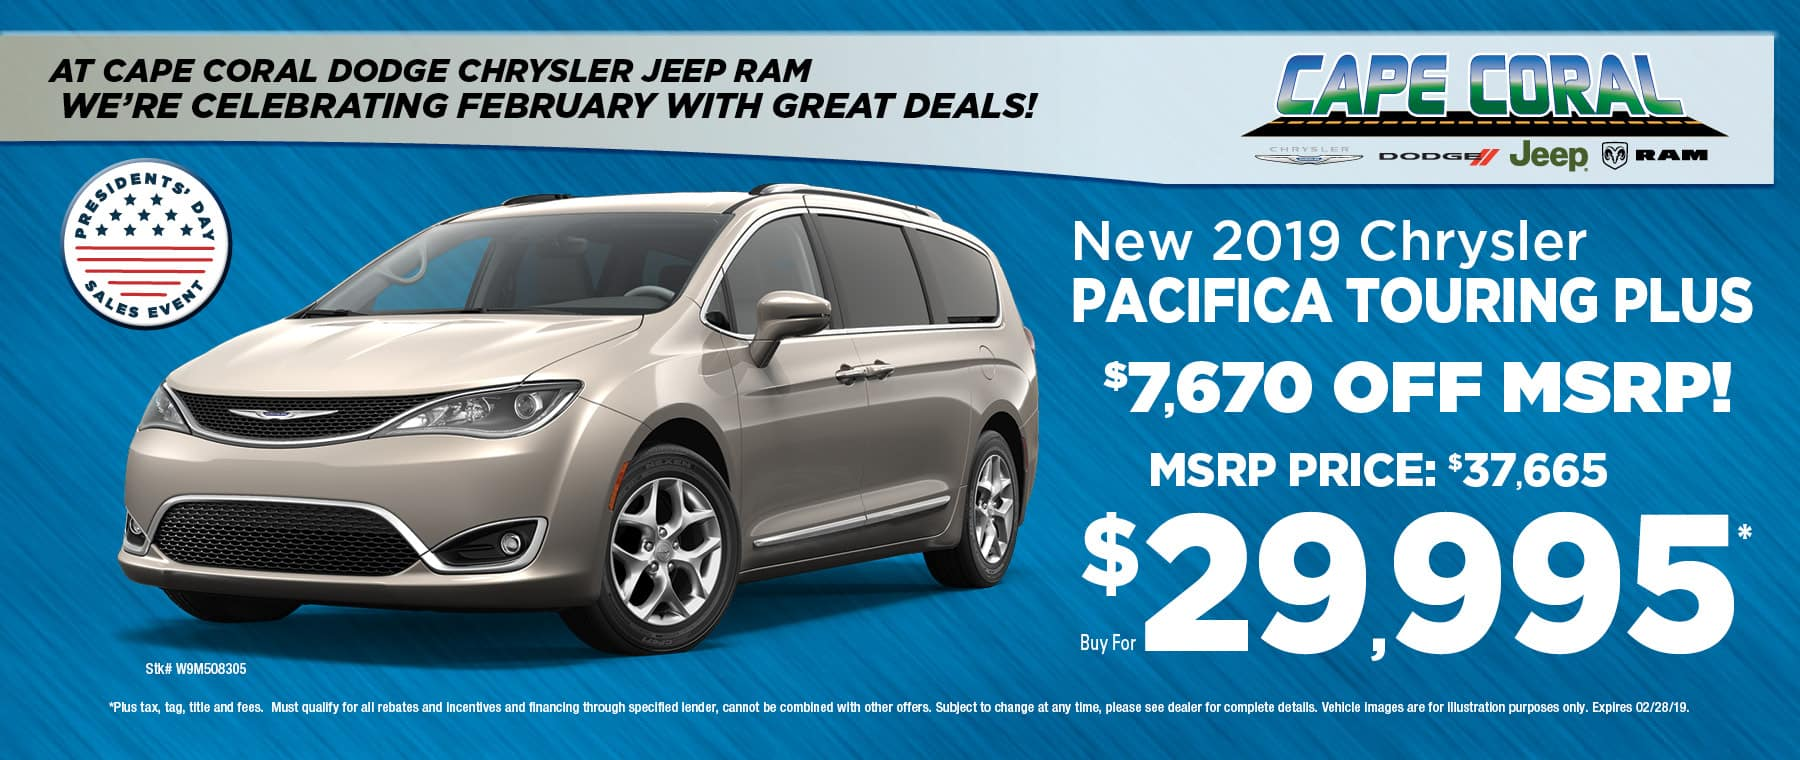 Cape Coral CJDR - Chrysler Pacifica!